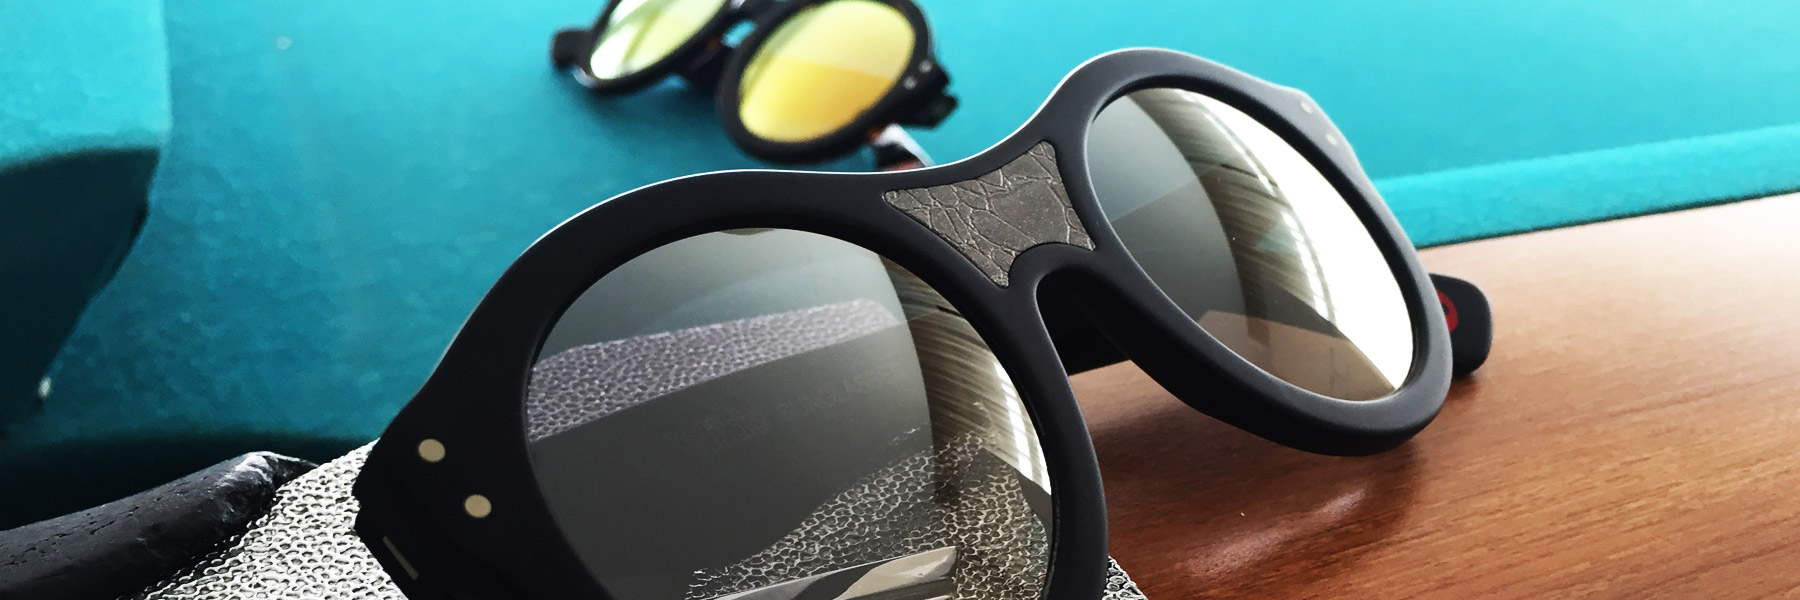 Wilde-Sunglasses-EXODUS-new-Collection-Barcelona_madrid_handcrafted_best_atore_8.jpg